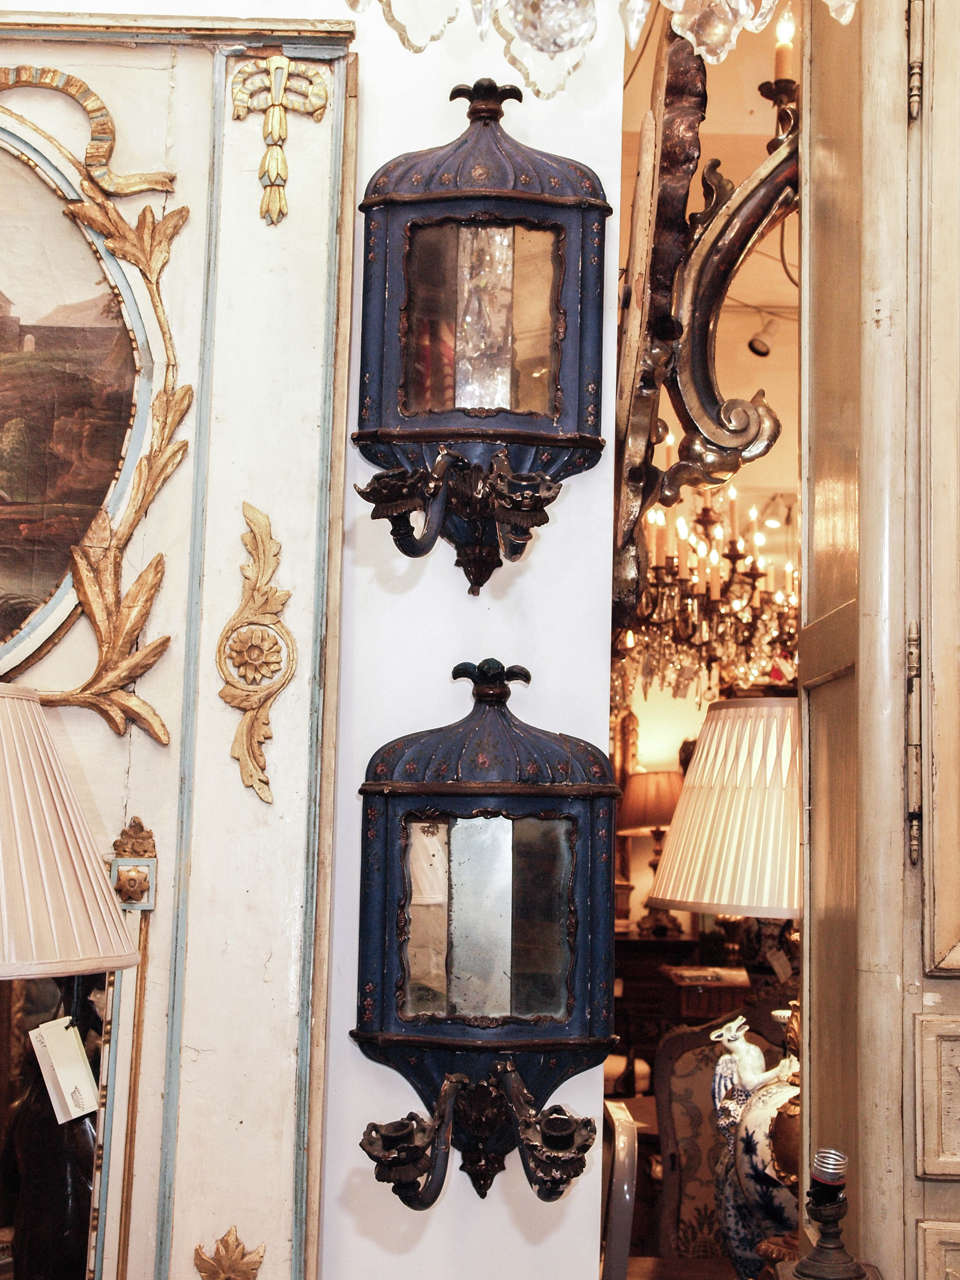 Pair of 18th c. Venetian Painted wood and mirrored wall sconces with two arms.